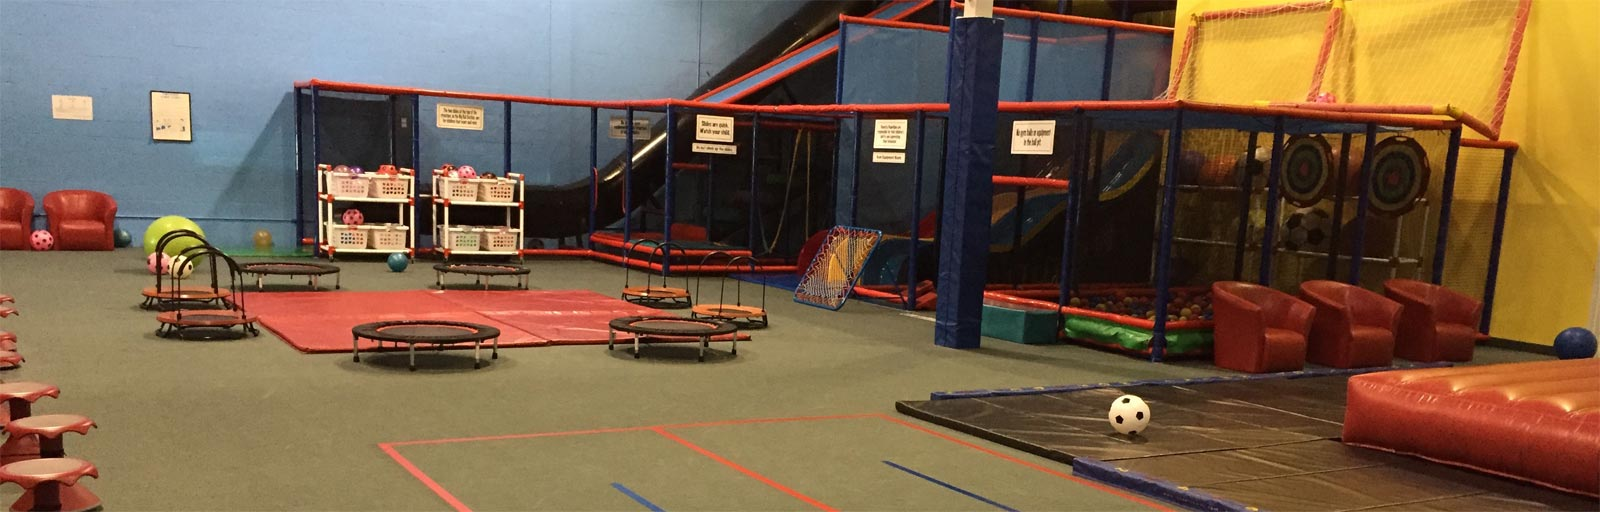 nets and slides kids gym in mississauga